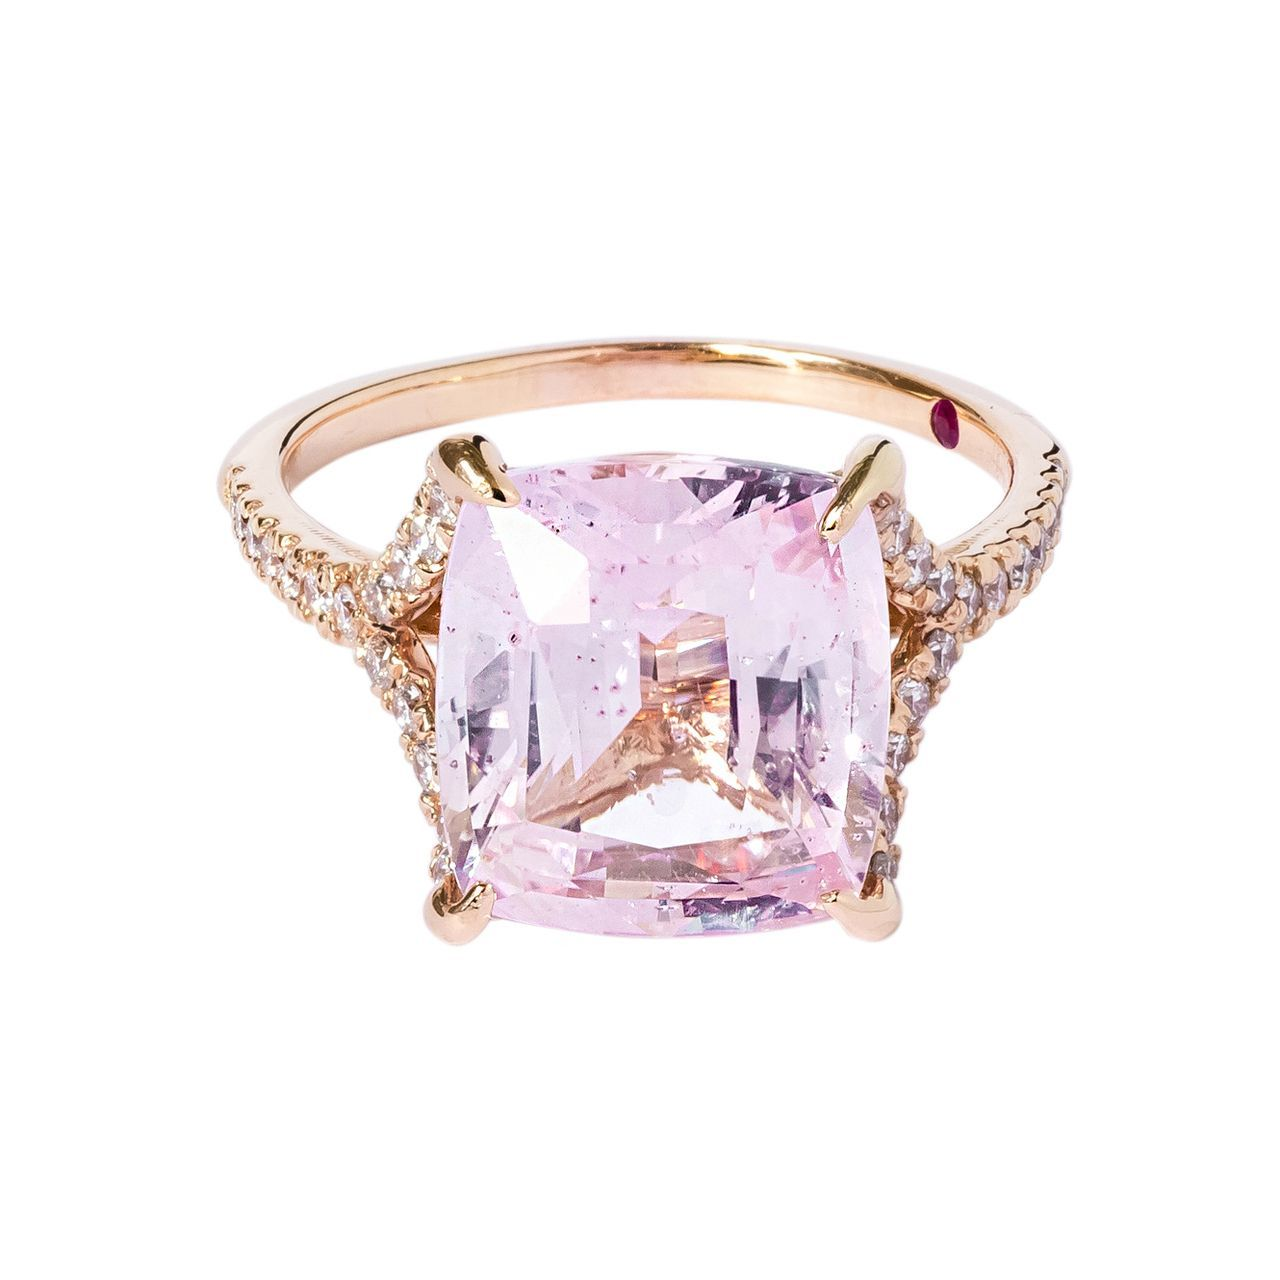 Padparadscha sapphire ring in rose gold unique diamond engagement